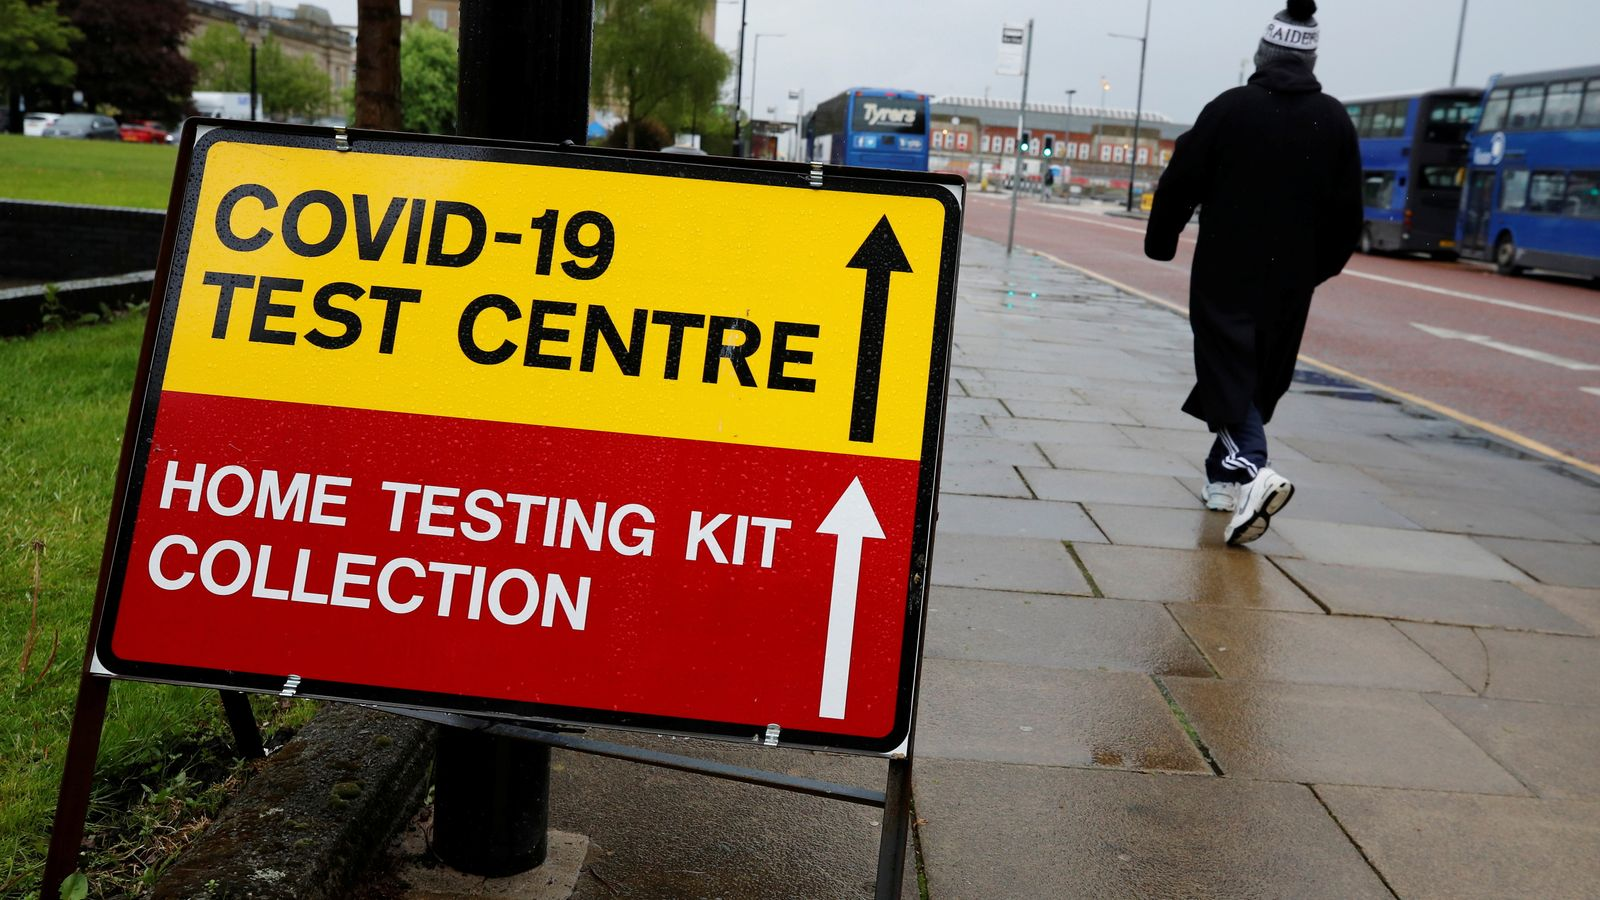 COVID-19: UK Reports 16,135 New Cases And Another 19 Deaths